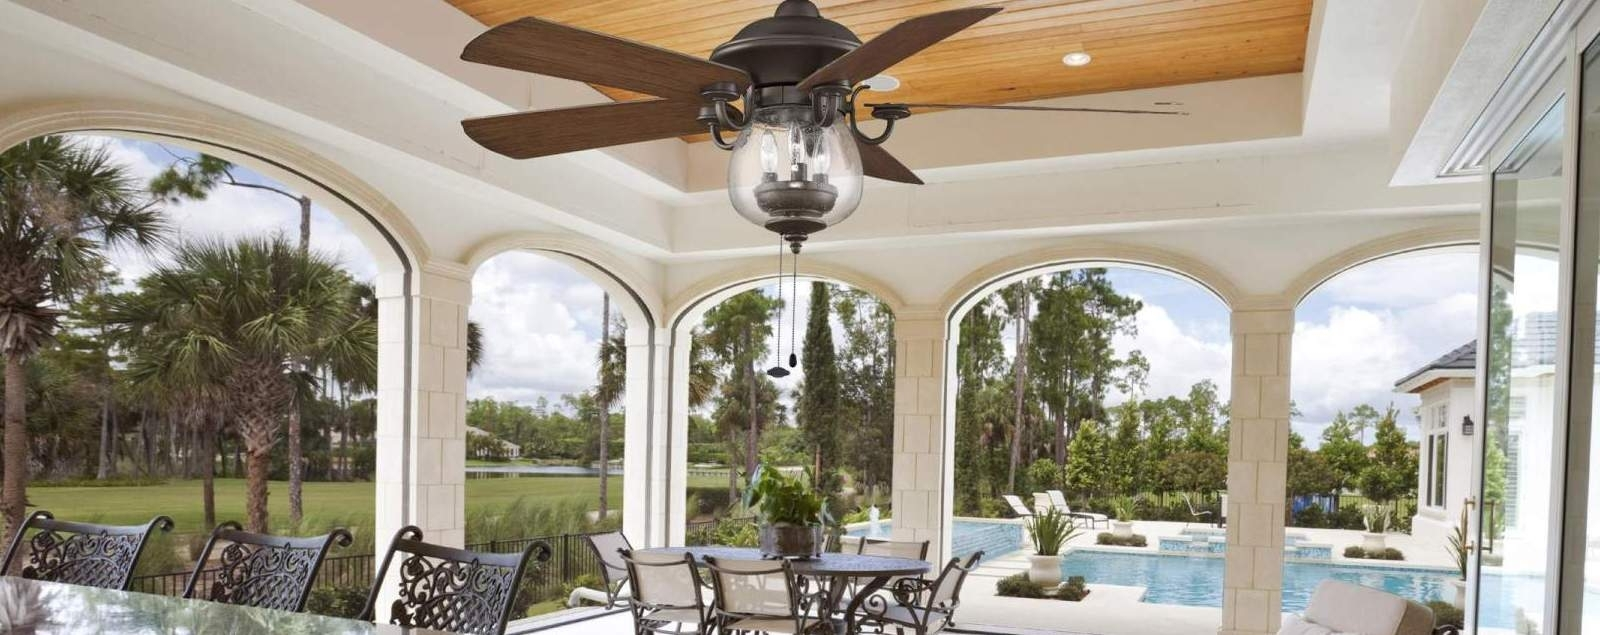 Outdoor Ceiling Fans – Shop Wet, Dry, And Damp Rated Outdoor Fans Within 2019 Outdoor Ceiling Fan Under Deck (Gallery 15 of 20)